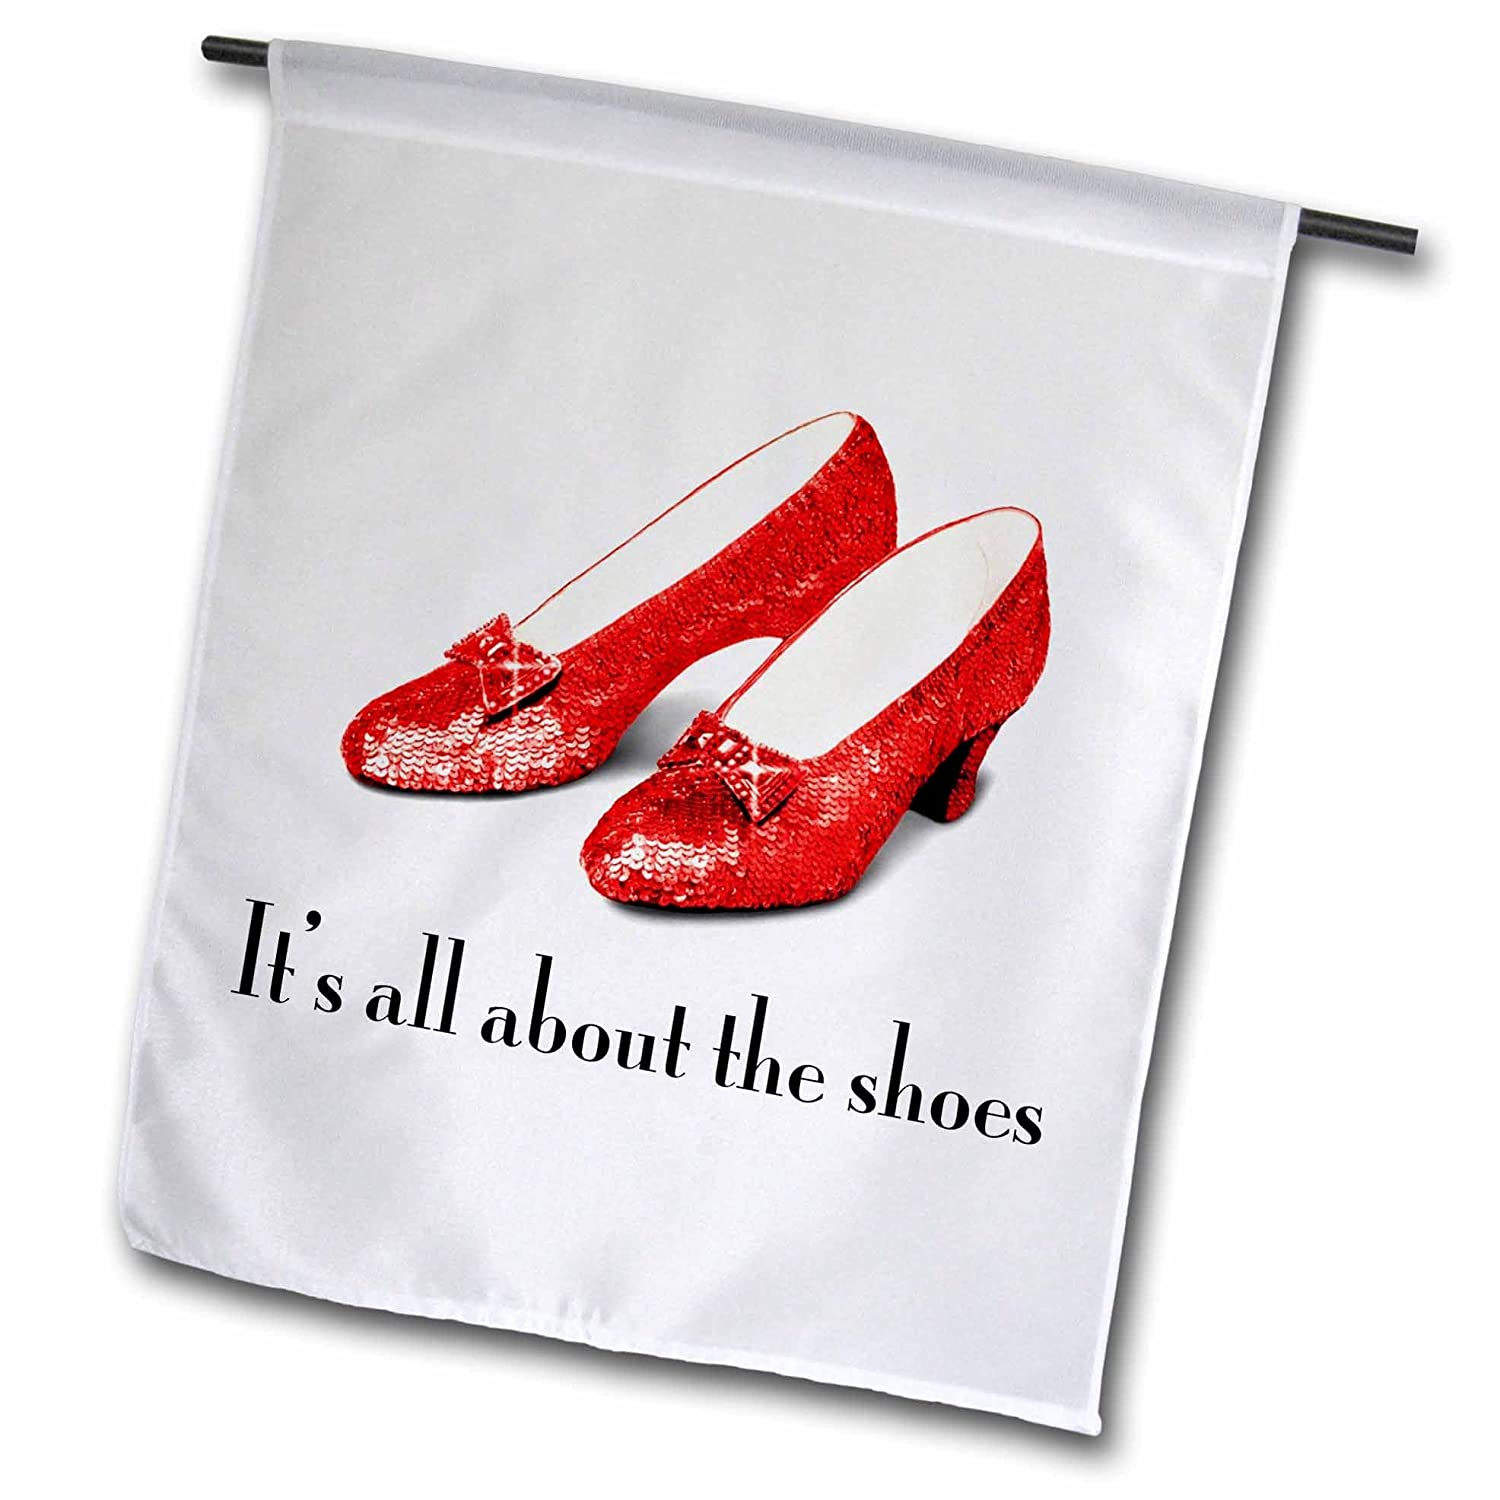 3dRose fl_108339_1 Its All About The Shoes Ruby Slippers Wizard of Oz Garden Flag, 12 by 18-Inch